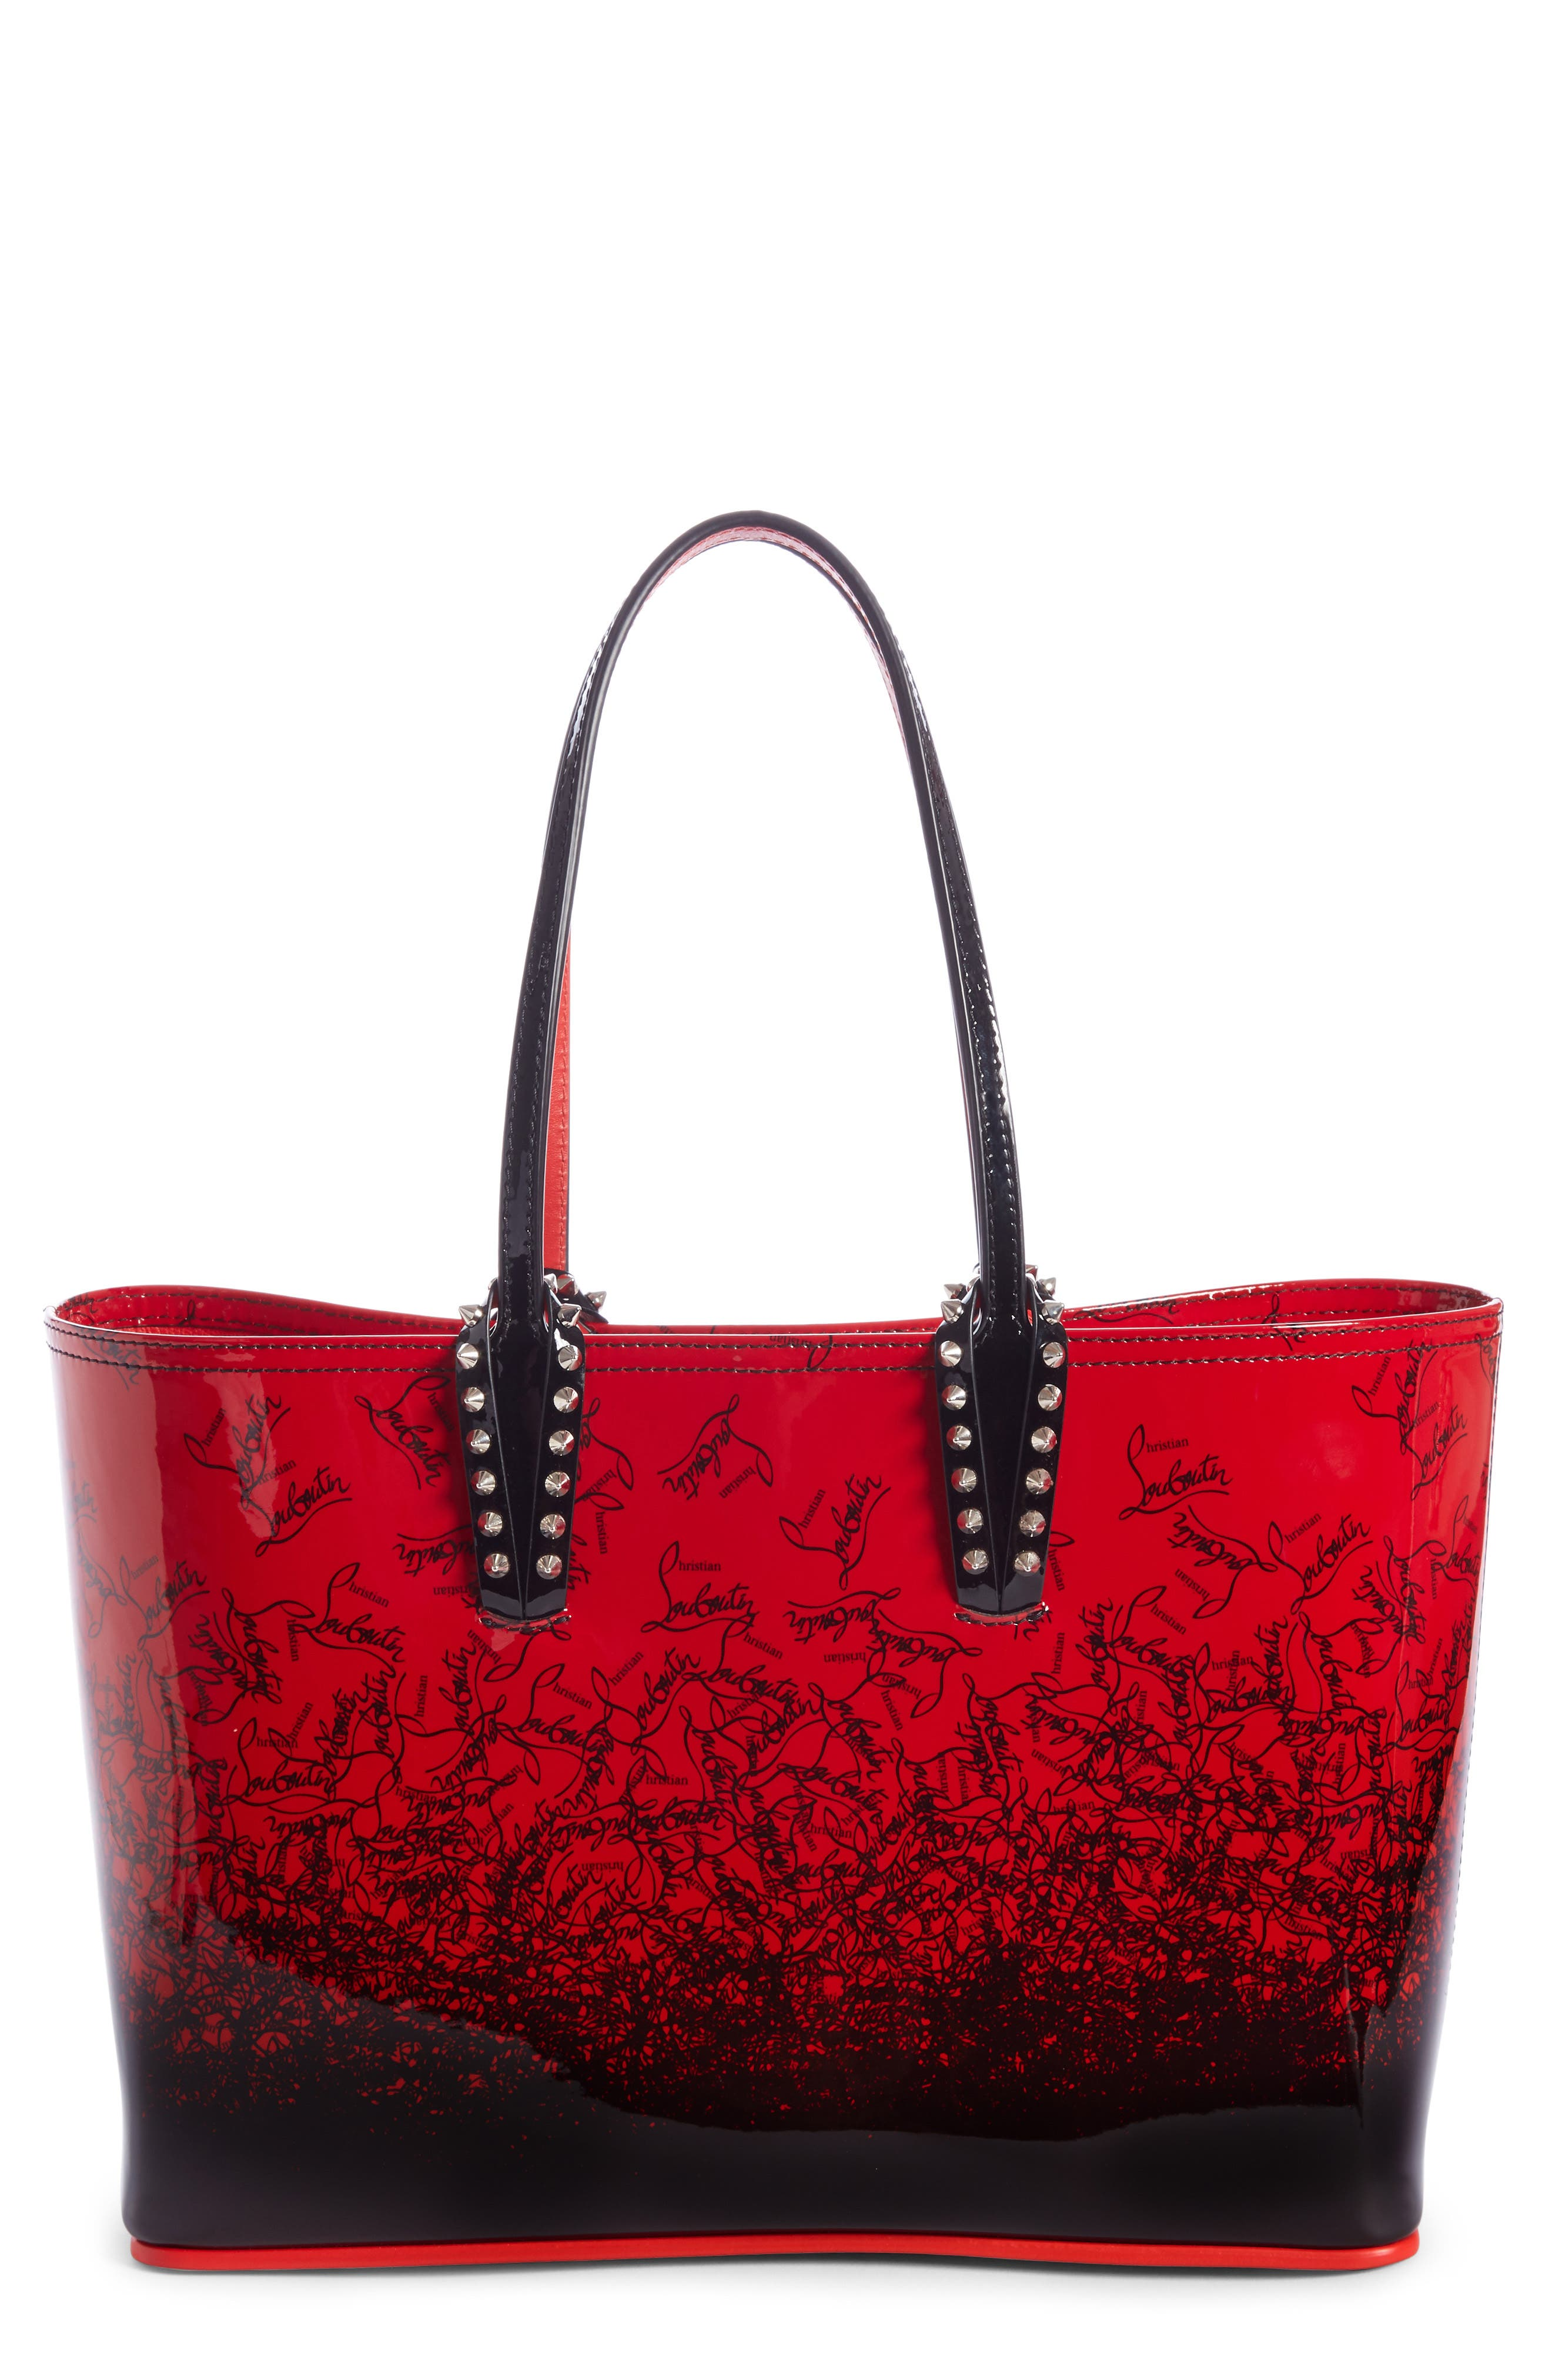 CHRISTIAN LOUBOUTIN Cabata Dégradé Patent Leather Tote, Main, color, 600